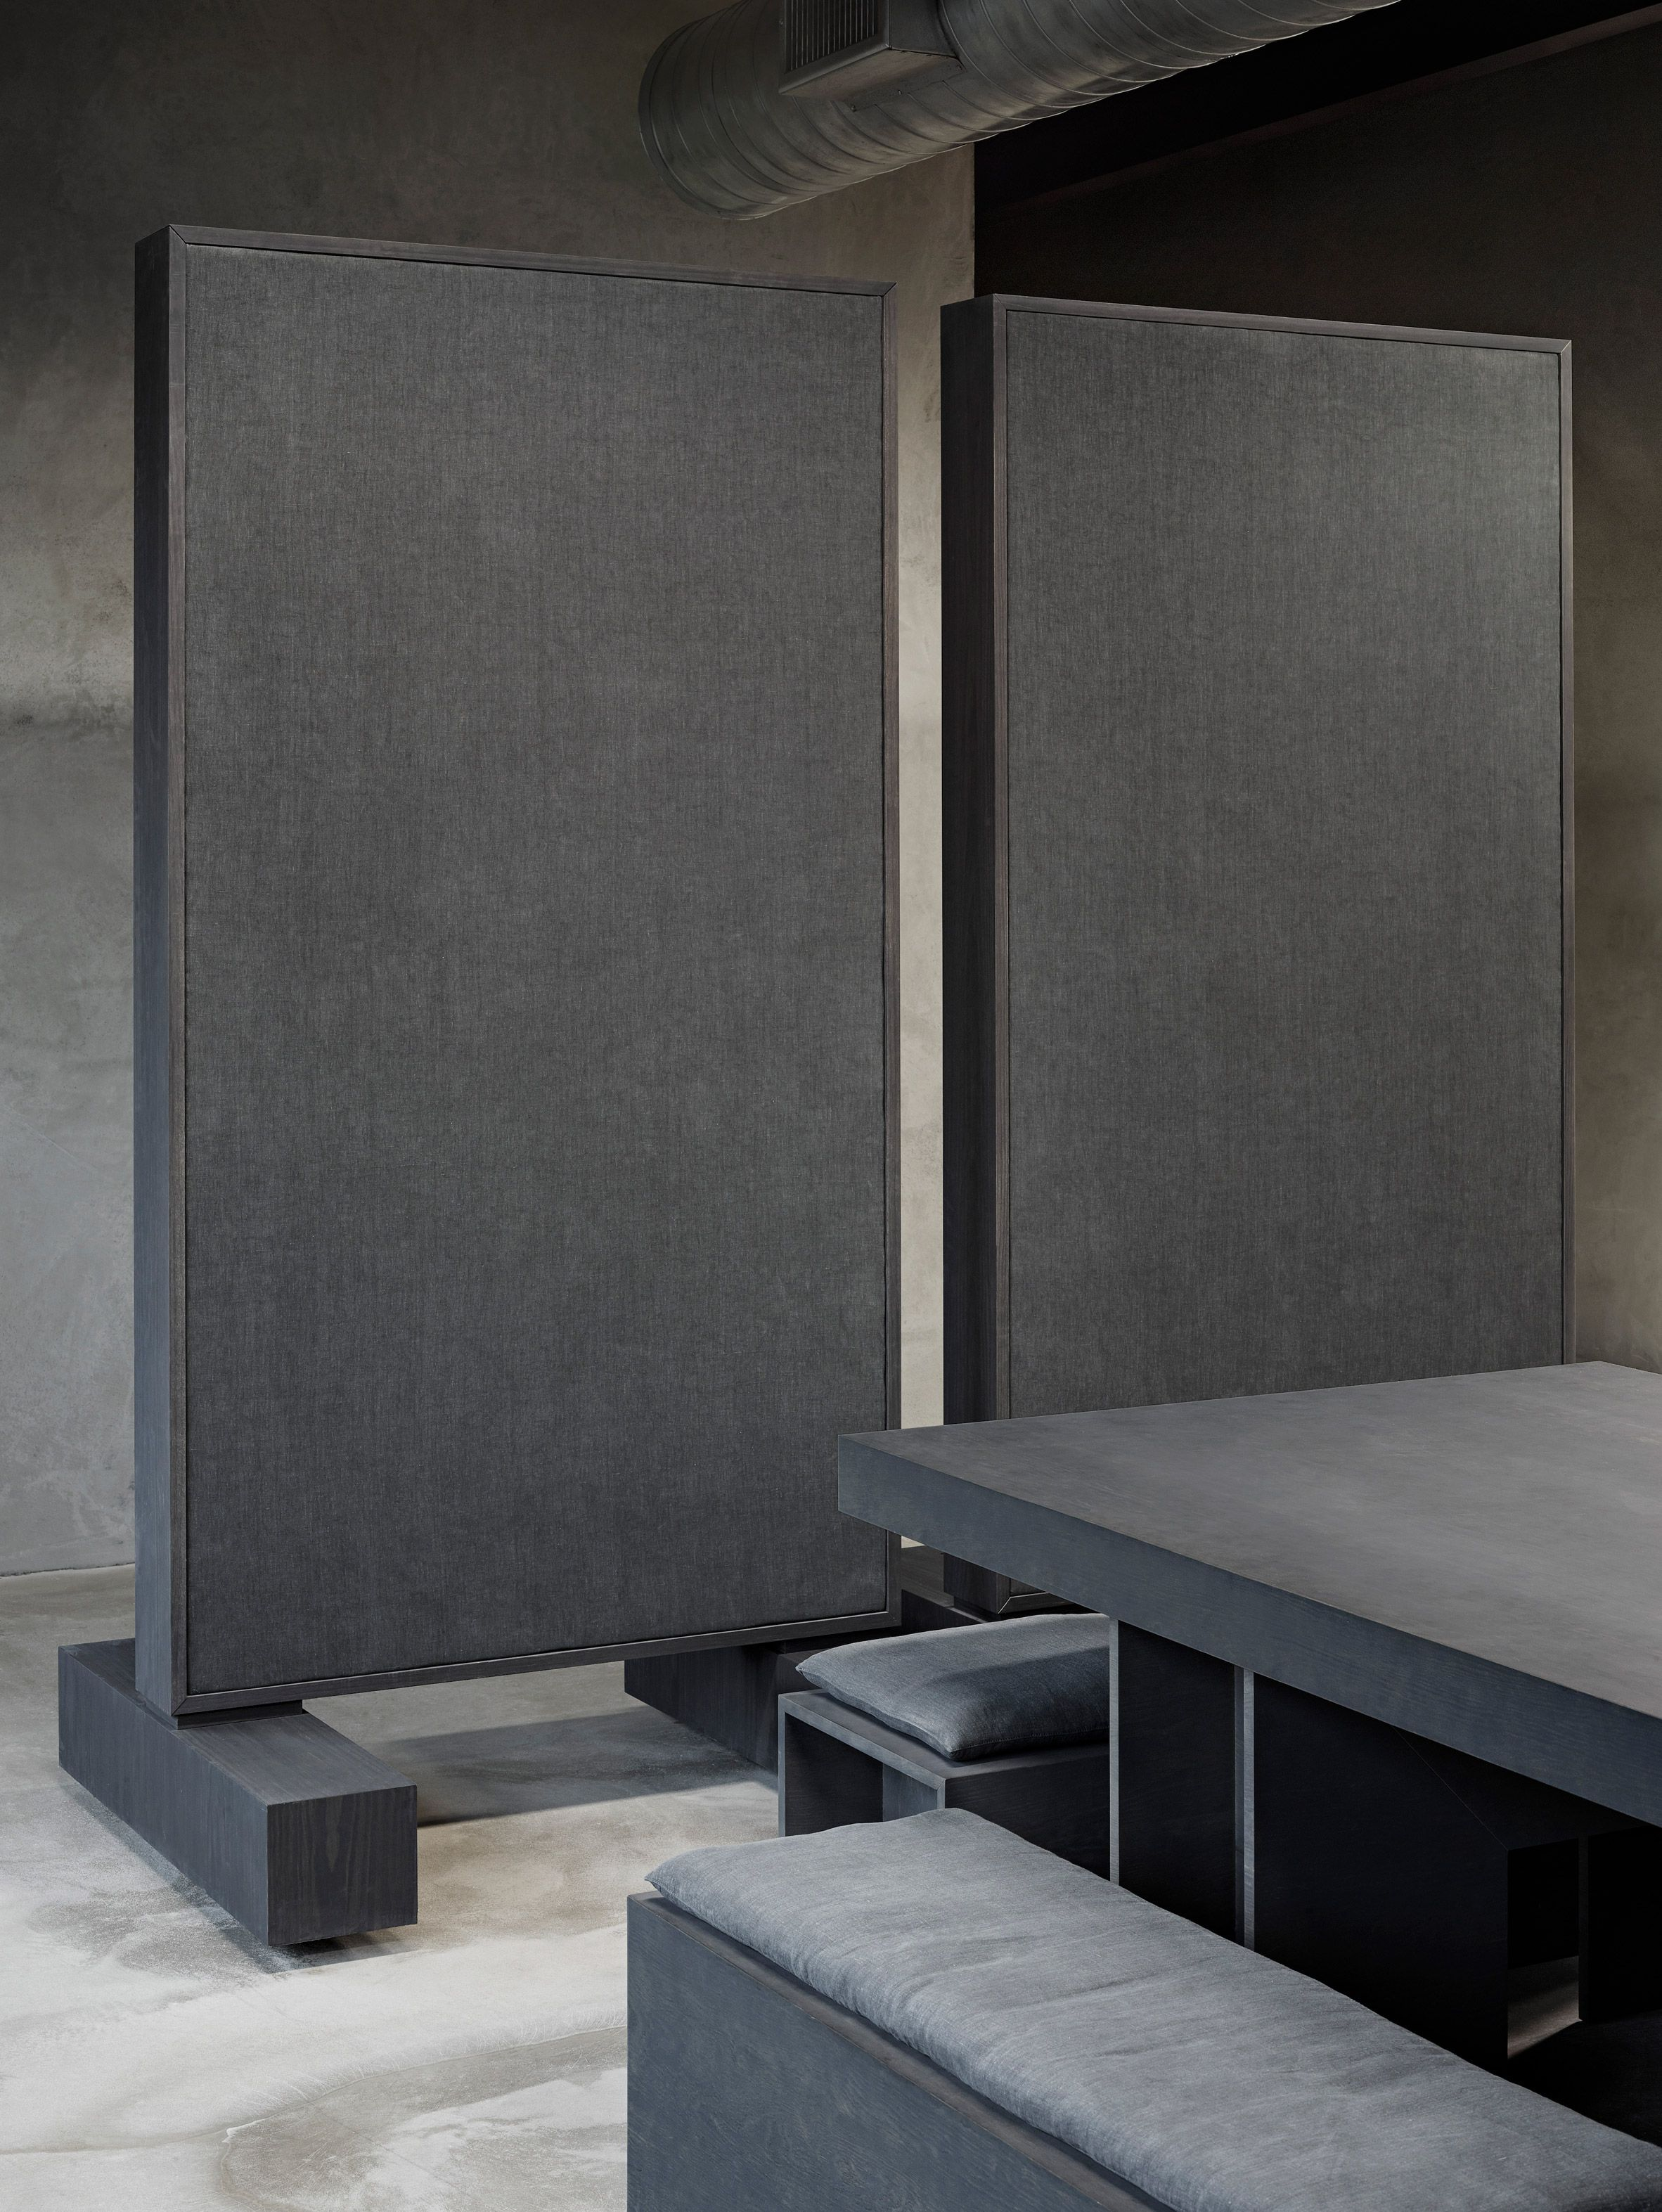 Yeezy Studio By Will Peron Kanye West Interior Furniture